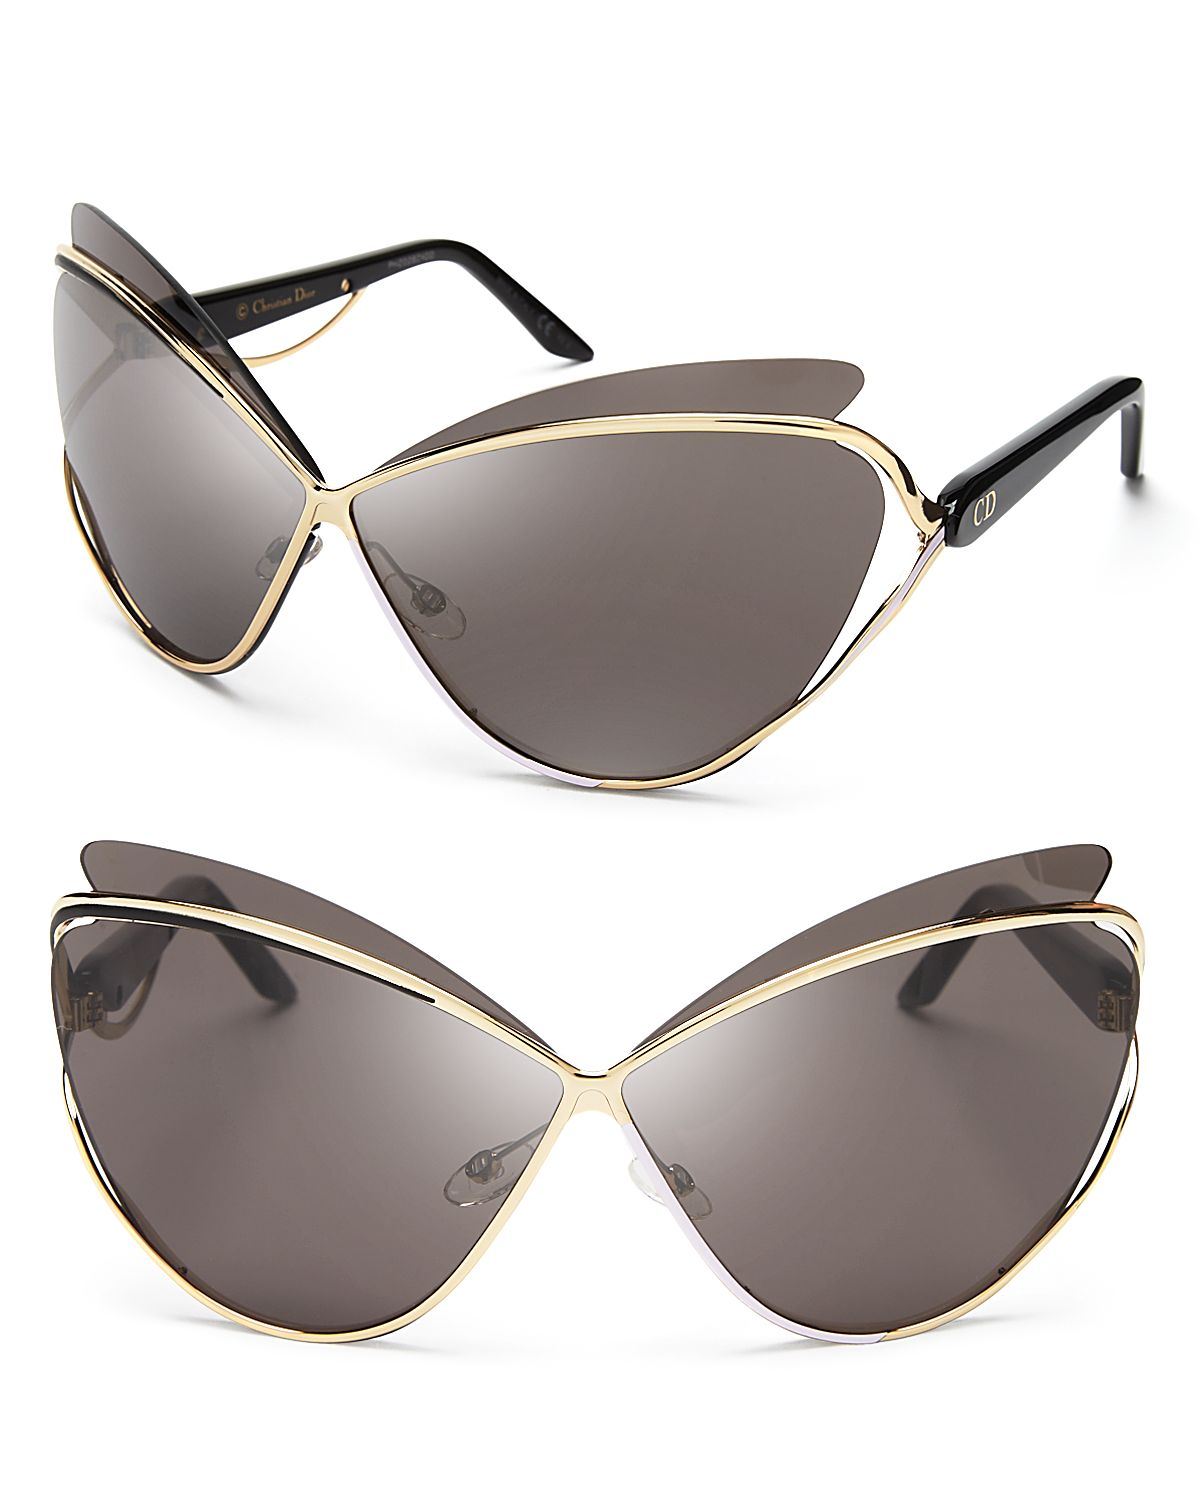 bddd797a19fd1 Dior Sunglasses Cat Eye